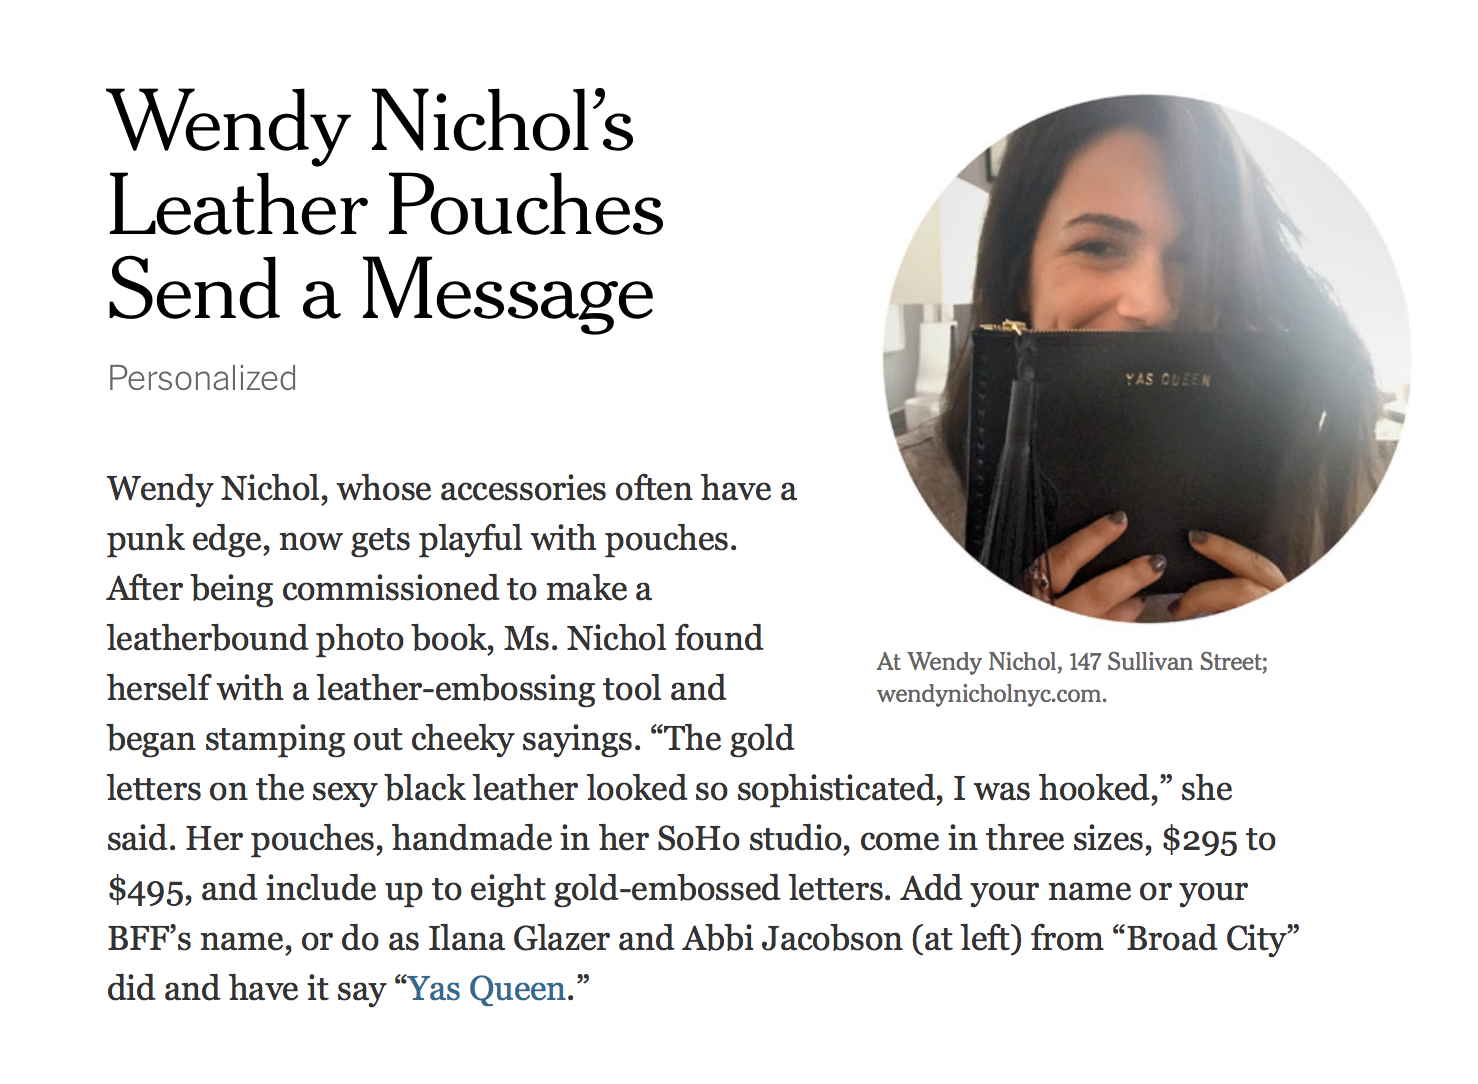 Abbi Jacobson Broad City Vogue.com Wendy Nichol Yas Queen Embossed Laced Leather Pouch Clutch